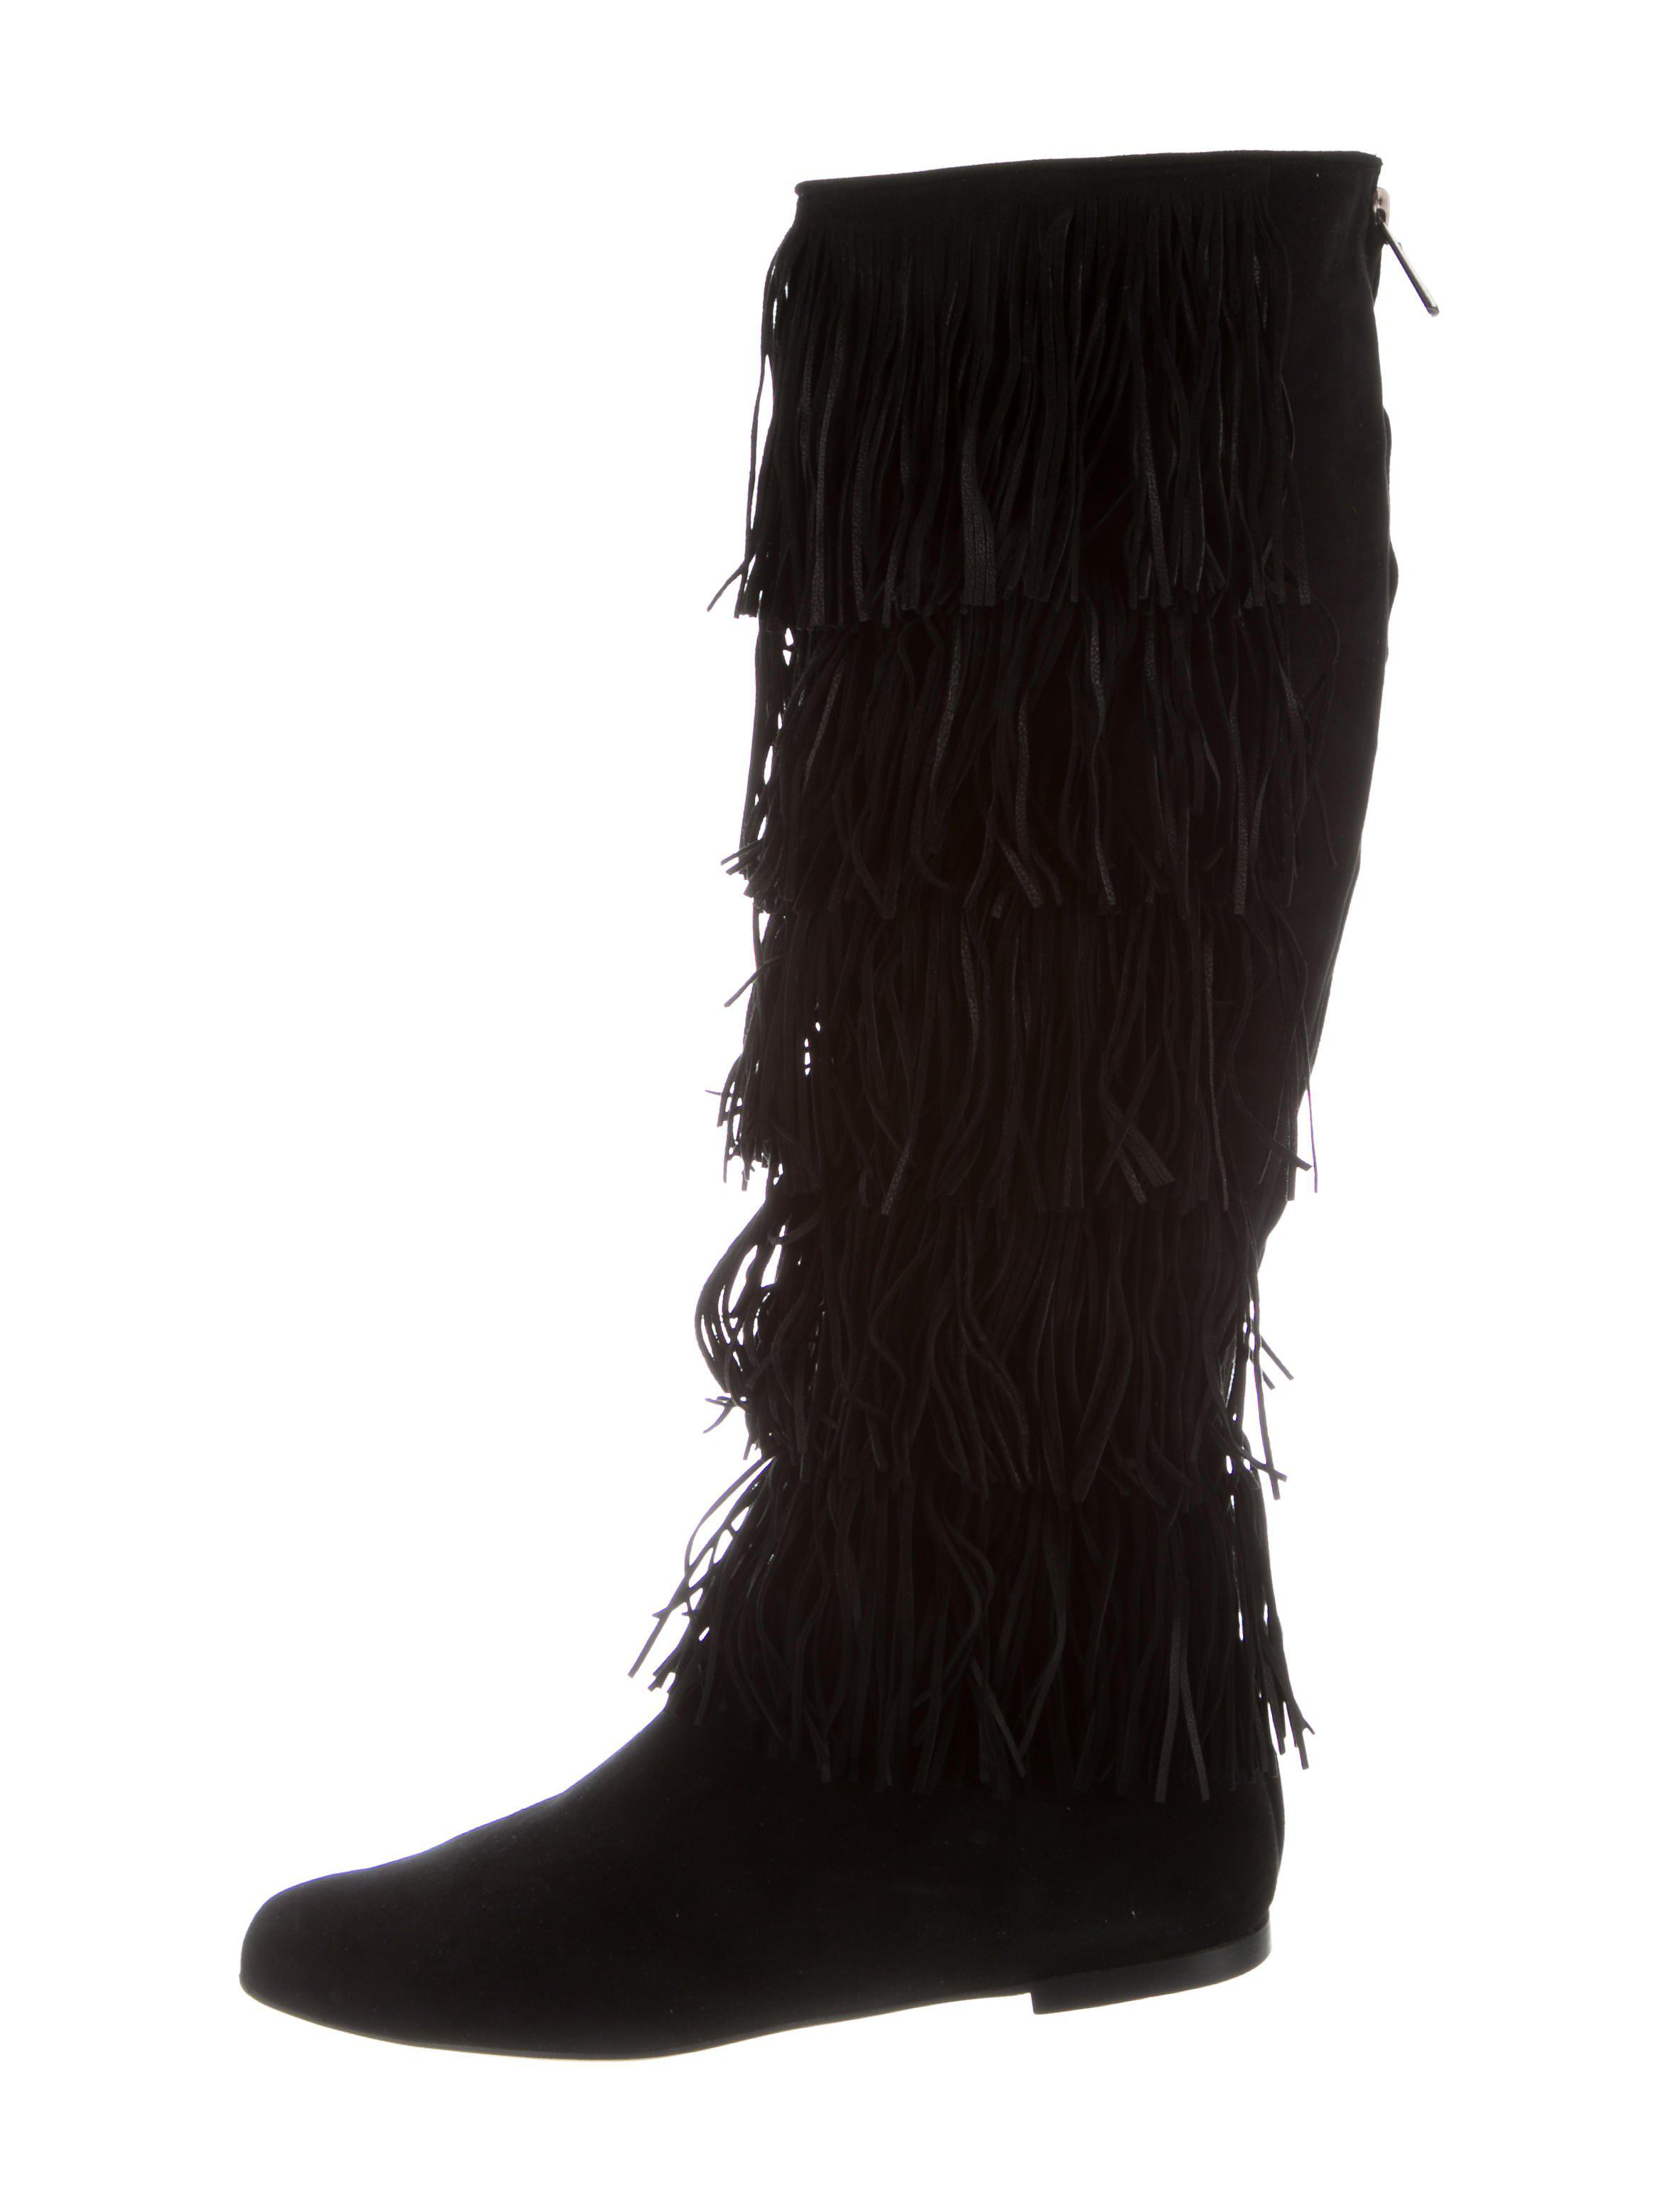 Paul Andrew Irving Fringe Boots w/ Tags 100% original cheap price 2014 newest online sale professional free shipping extremely 38fzD2T4